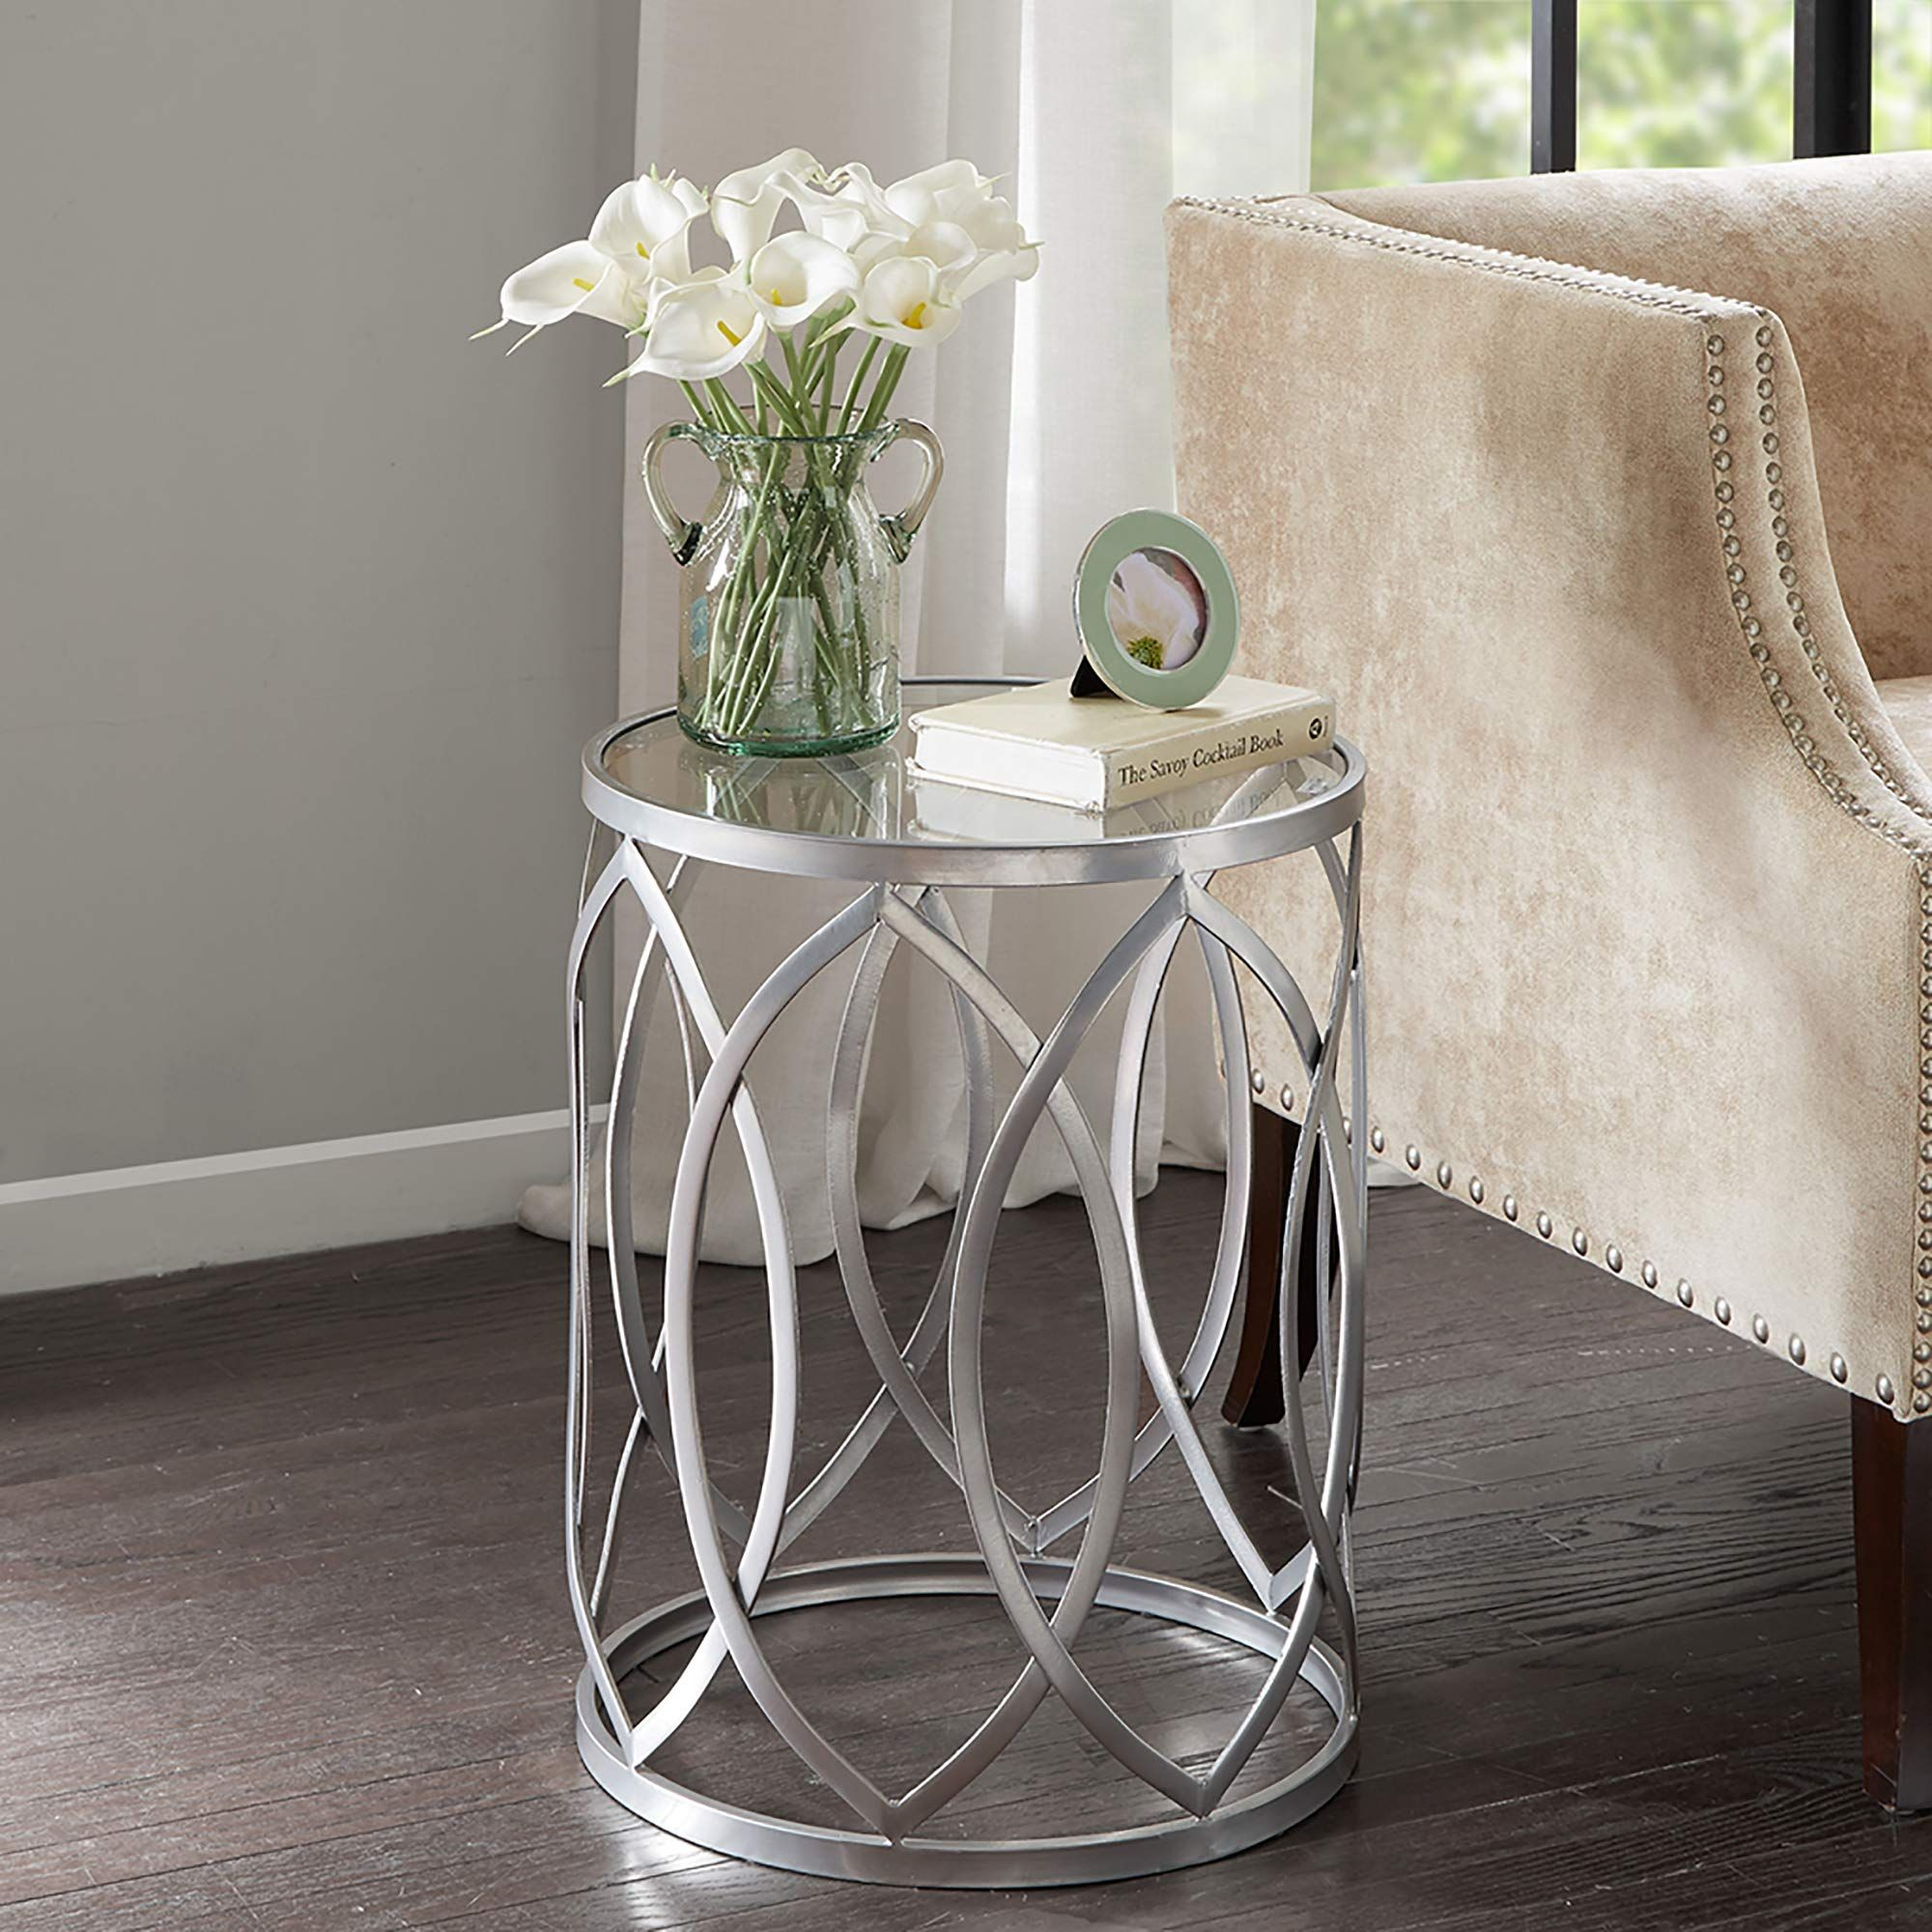 Madison Park Arlo Accent Tables For Living Room Glass Top Hollow Round Small Metal Frame G In 2020 Metal Accent Table Glass Top Accent Table Round Metal Accent Table #round #glass #tables #for #living #room